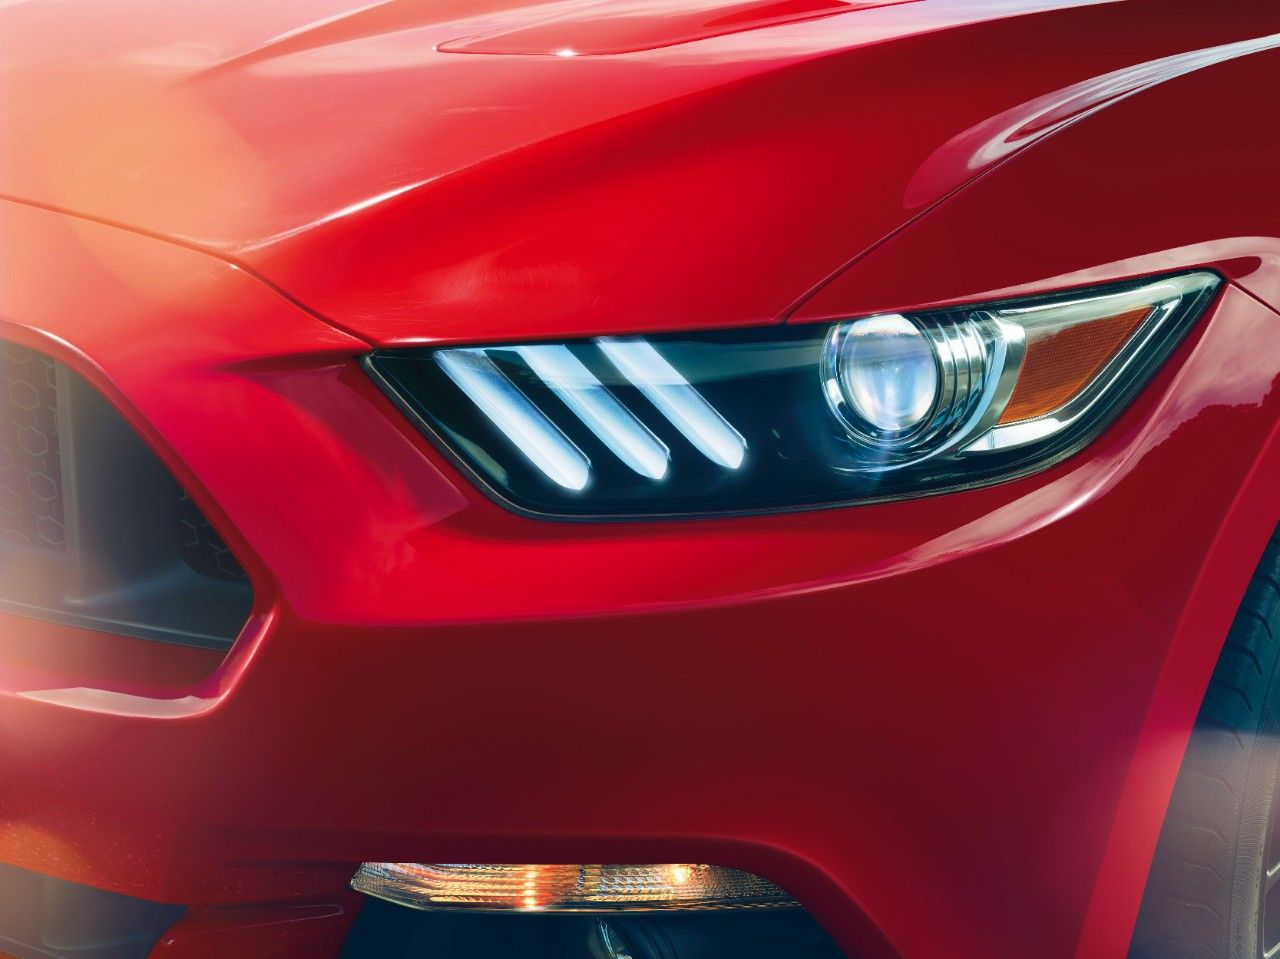 2015 ford mustang redesigned headlights 2015 ford mustang new ford mustang 2015 mustang ford mustang gt